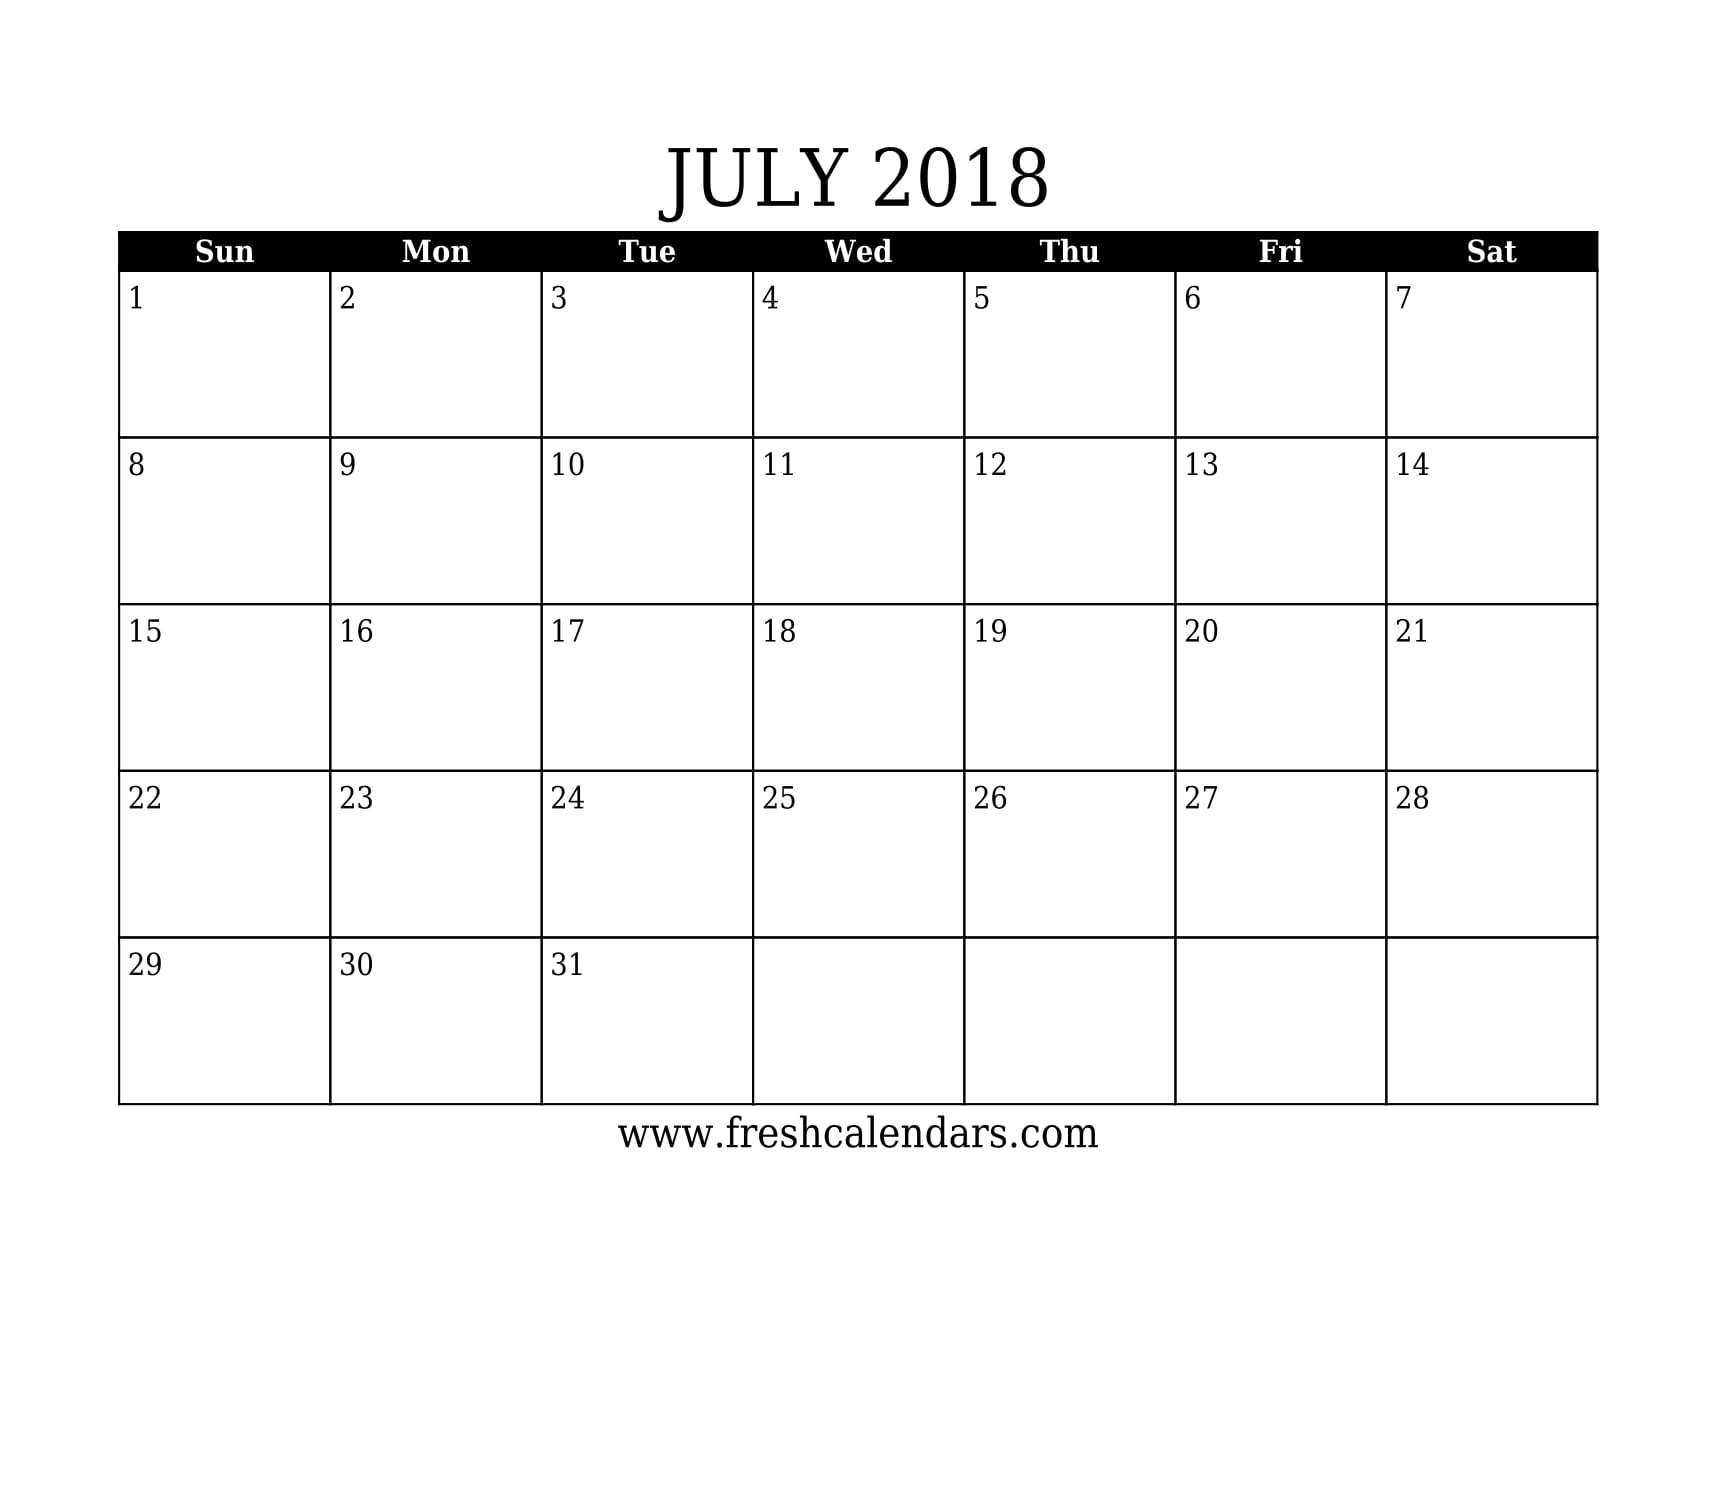 July 2018 Calendar Printable - Fresh Calendars in Blank July Monthly Calendar